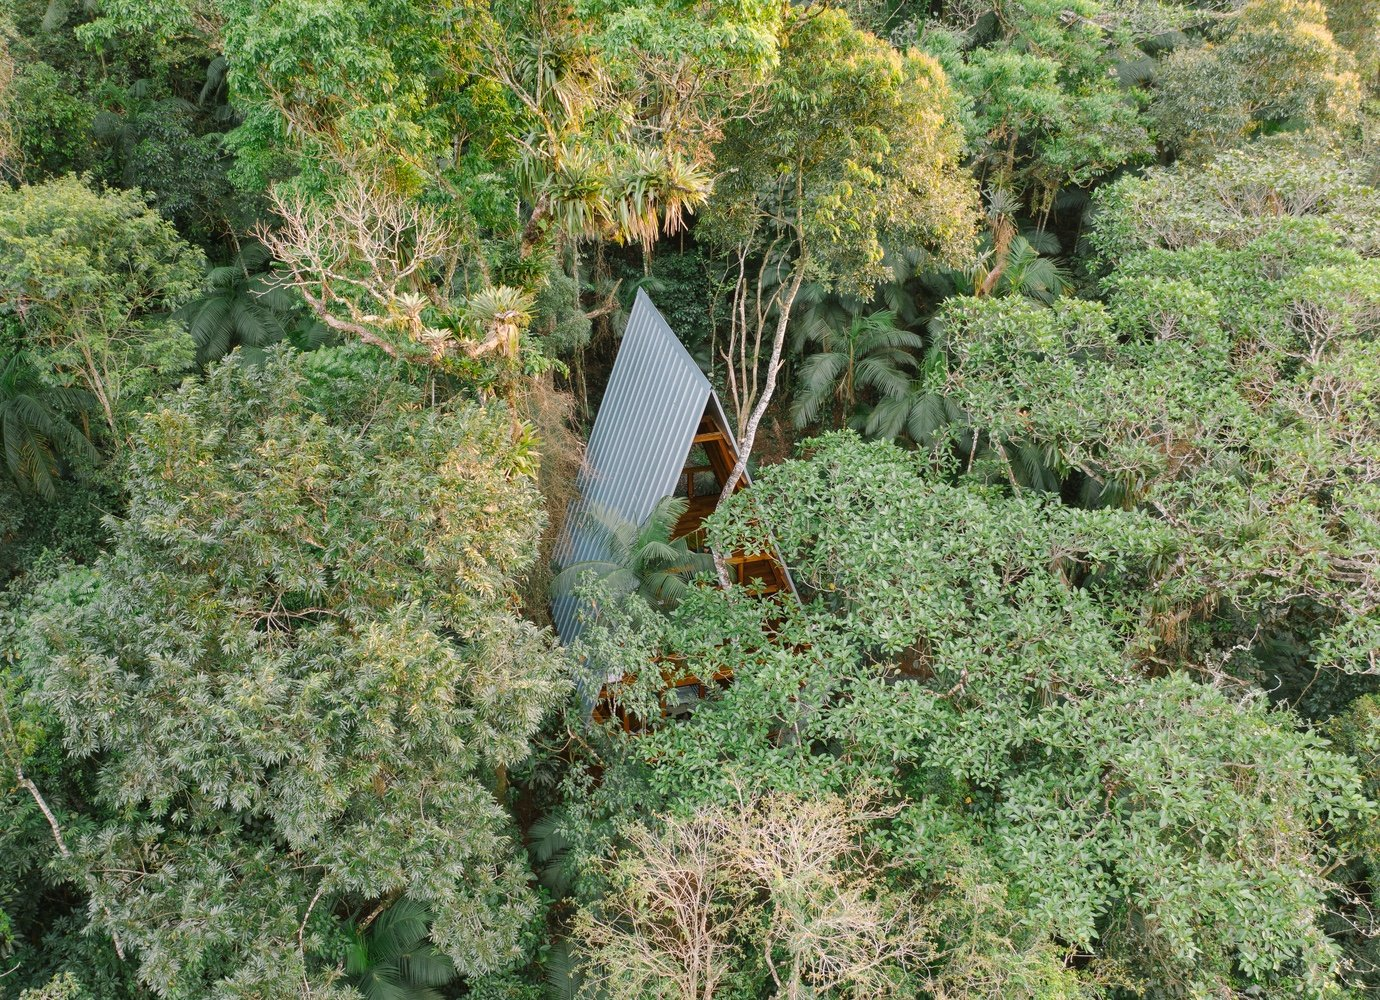 Monkey House: Croatian architect designs a vertical home in the Brazilian forest